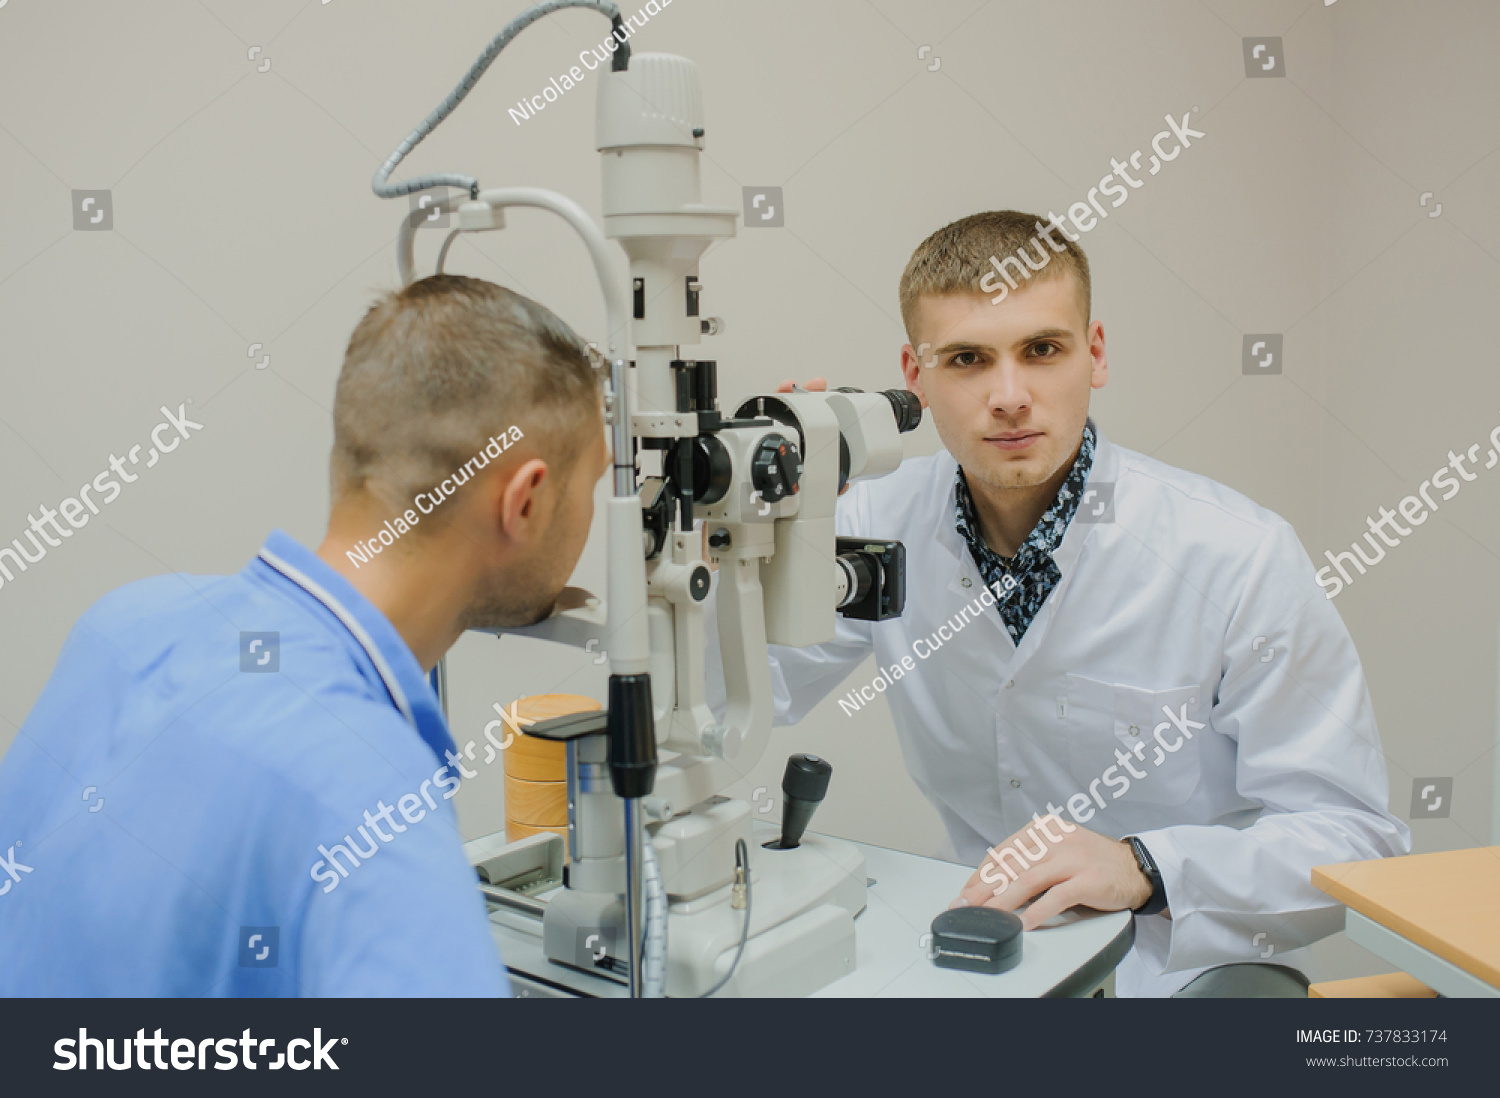 doctor/eye specialist/optometrist in an ophthalmologic clinic with a lot of medical equipment behind: biomicroscopy with slit lamp procedure, phoropter, eye scanner, non-mydriatic retinal camera #737833174